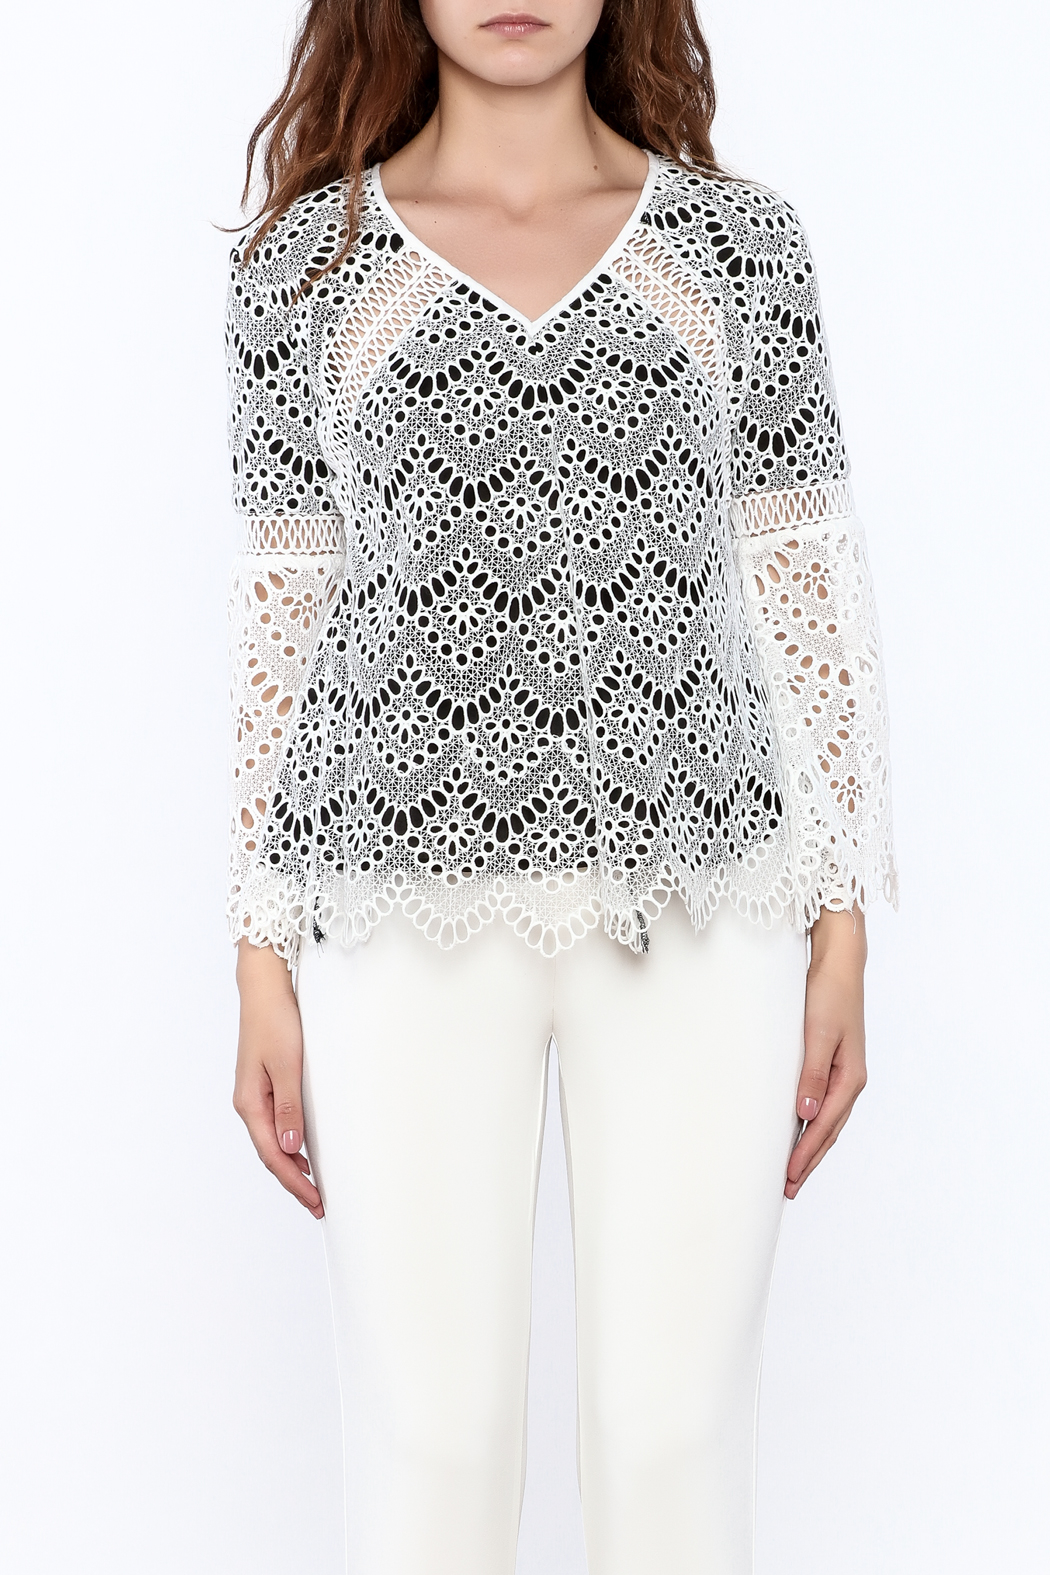 KAS New York Semi Lined Lace Top - Side Cropped Image